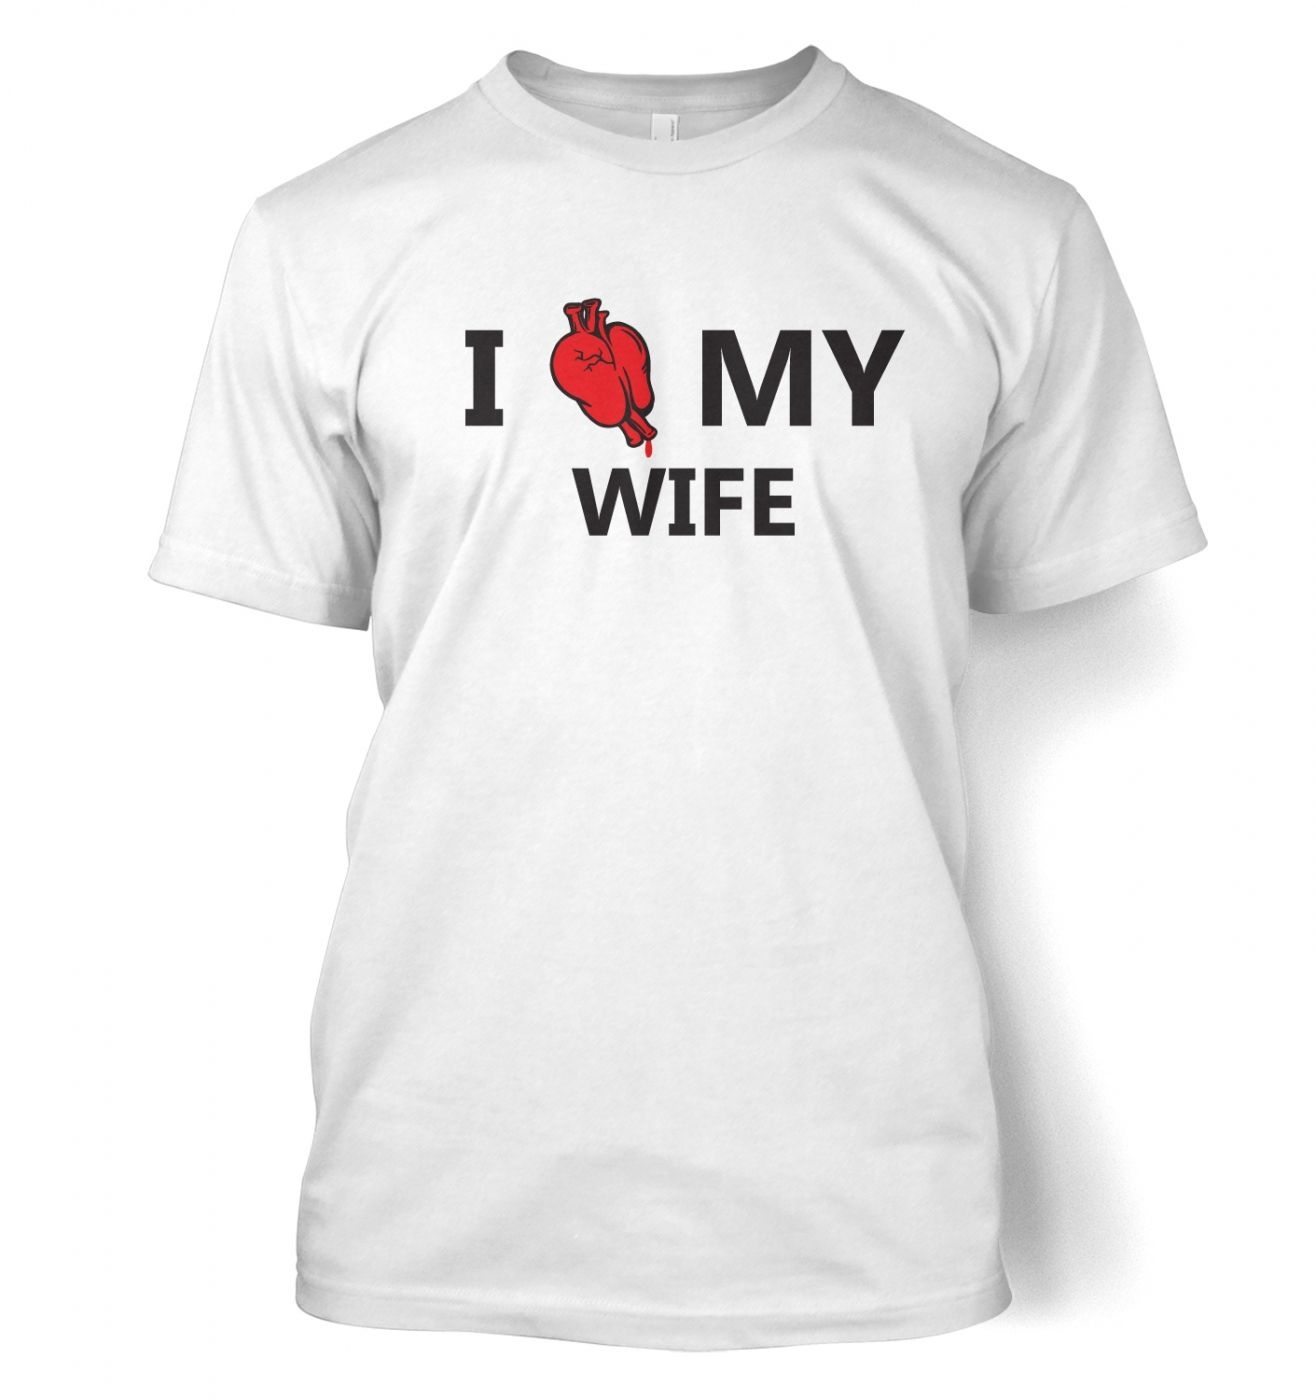 I real heart my wife t-shirt